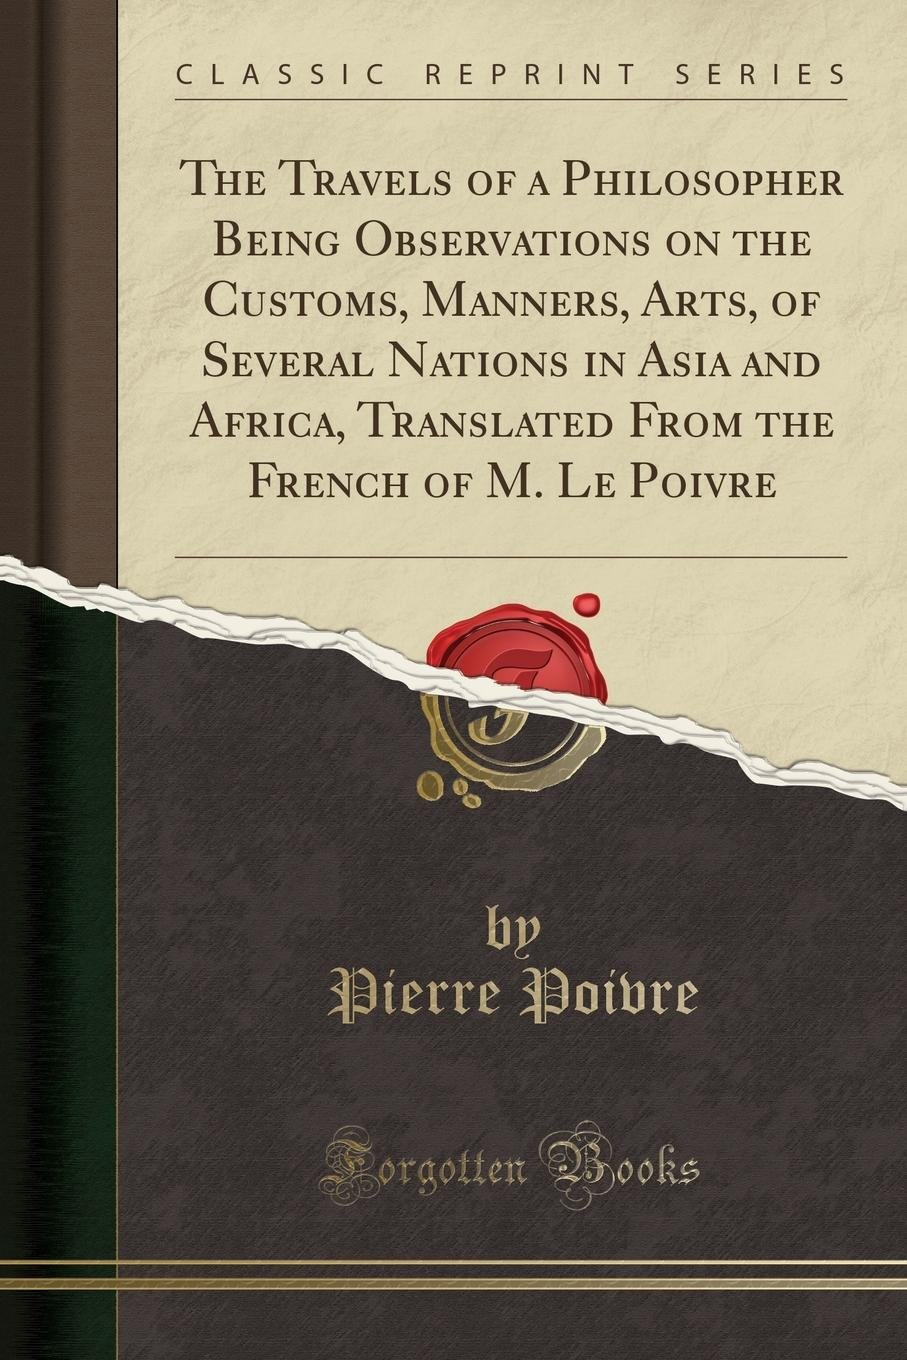 Download The Travels of a Philosopher Being Observations on the Customs, Manners, Arts, of Several Nations in Asia and Africa, Translated From the French of M. Le Poivre (Classic Reprint) pdf